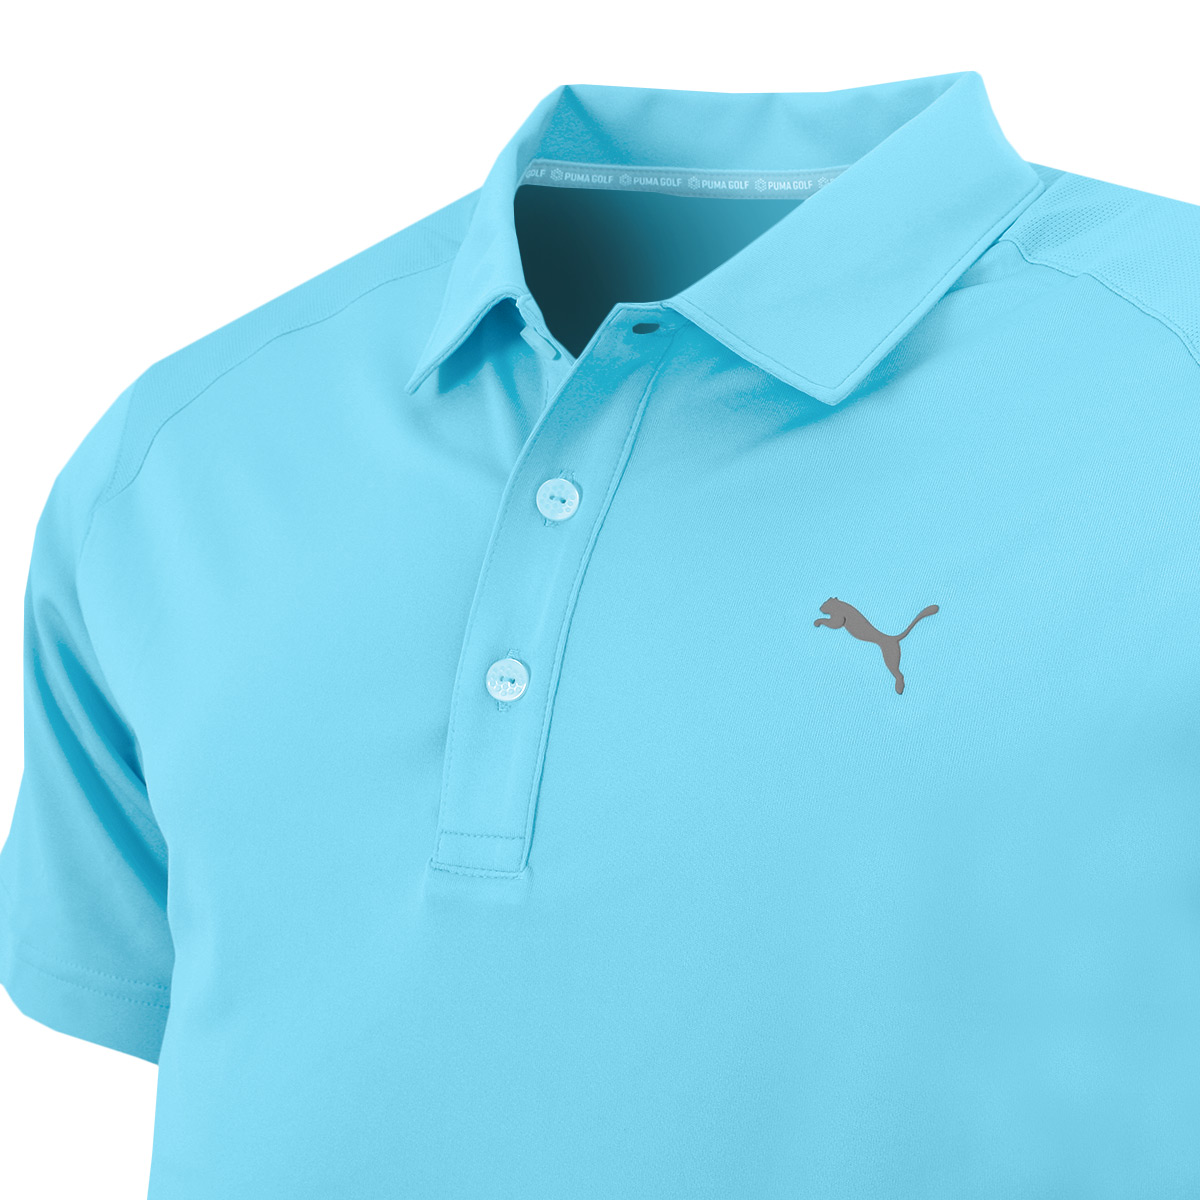 Puma-Golf-Mens-Essential-Pounce-Polo-Shirt-DryCell-Lightweight-Tech-43-OFF-RRP thumbnail 37